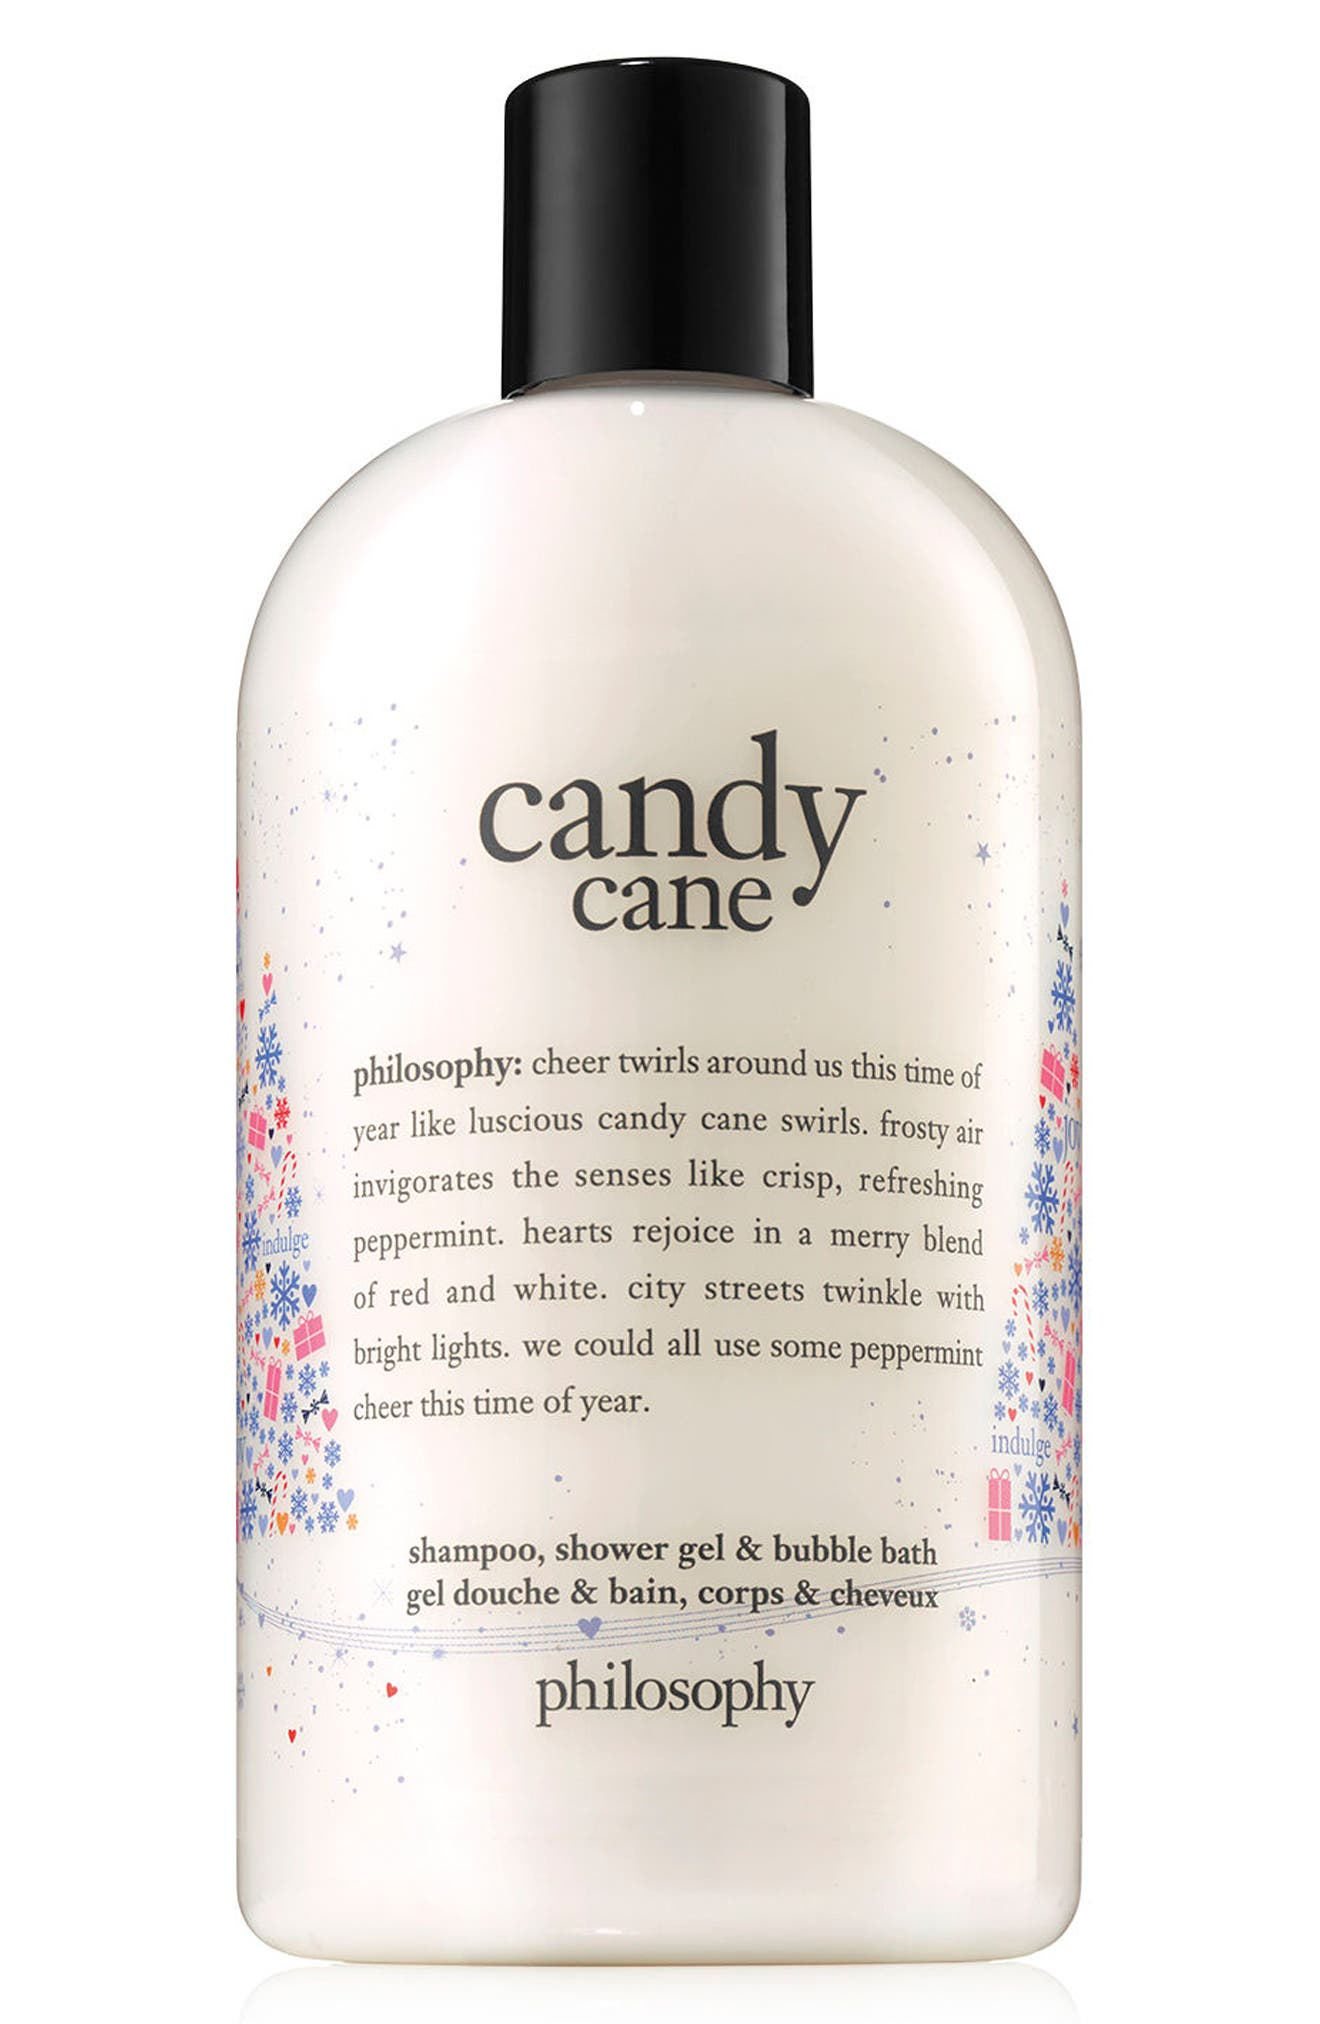 Alternate Image 1 Selected - philosophy candy cane shampoo, shower gel & bubble bath (Limited Edition)